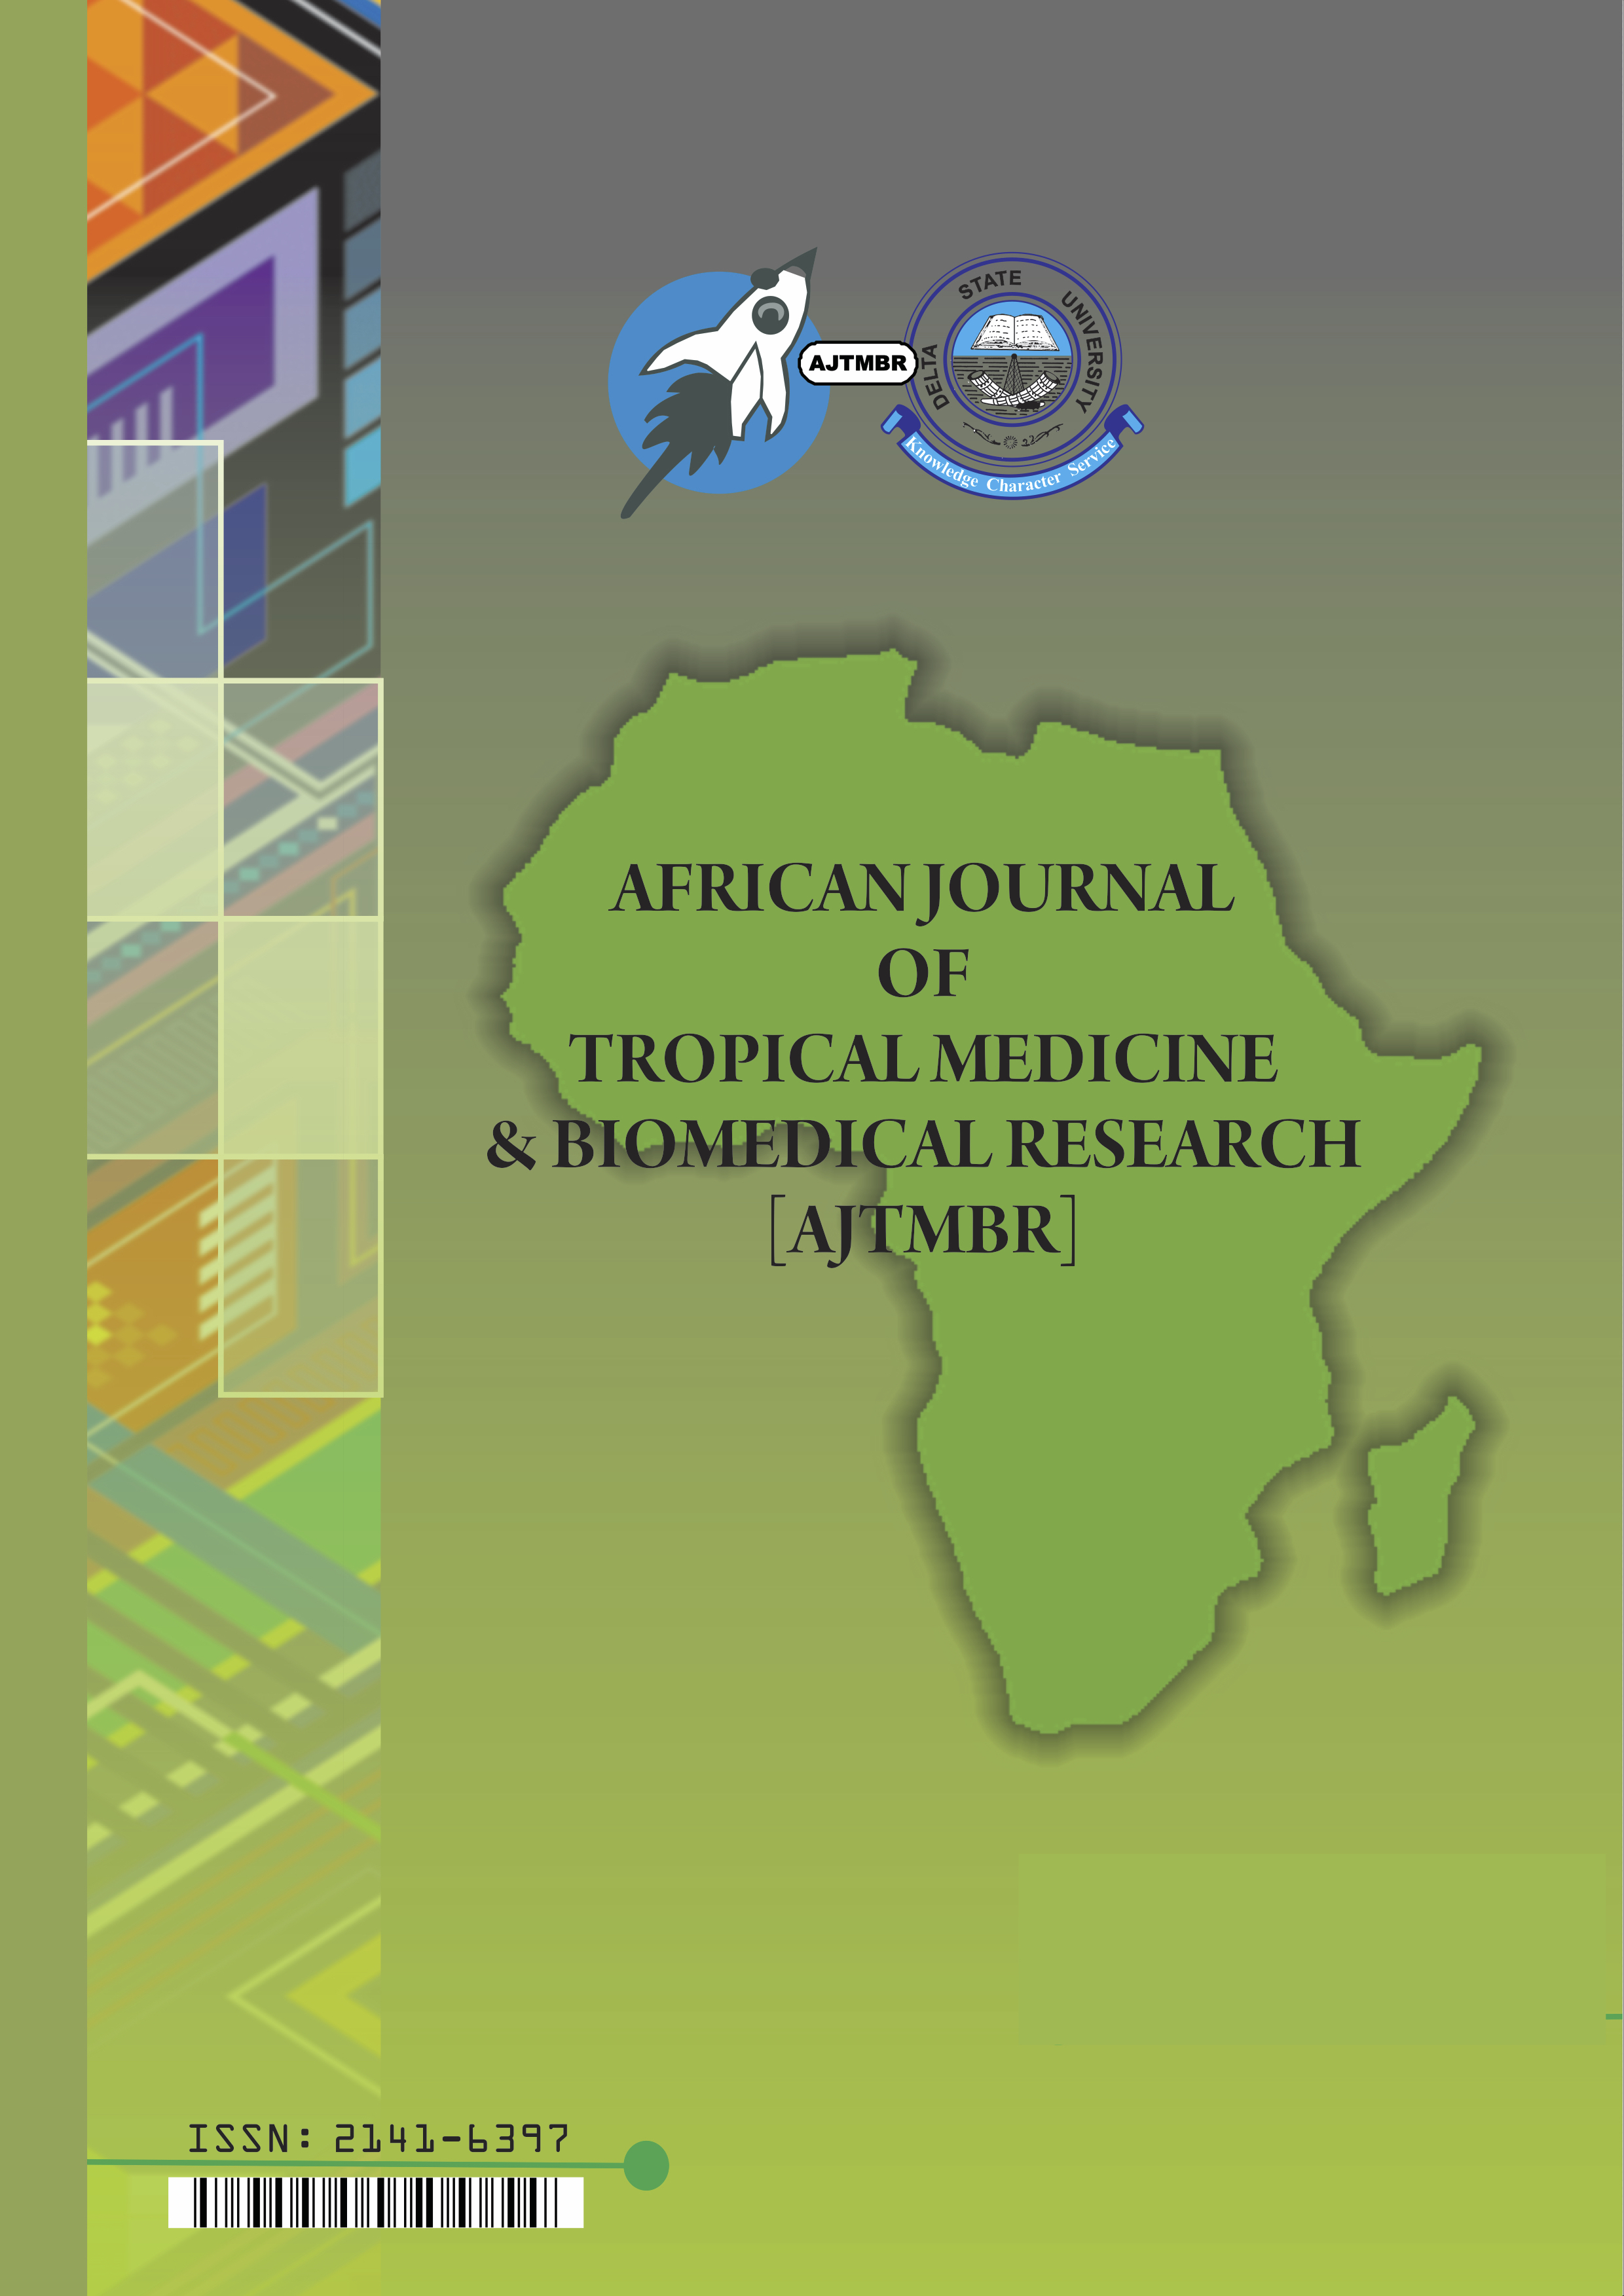 View Vol. 1 No. 1: African Journal of Tropical Medicine and Biomedical Research March 2010